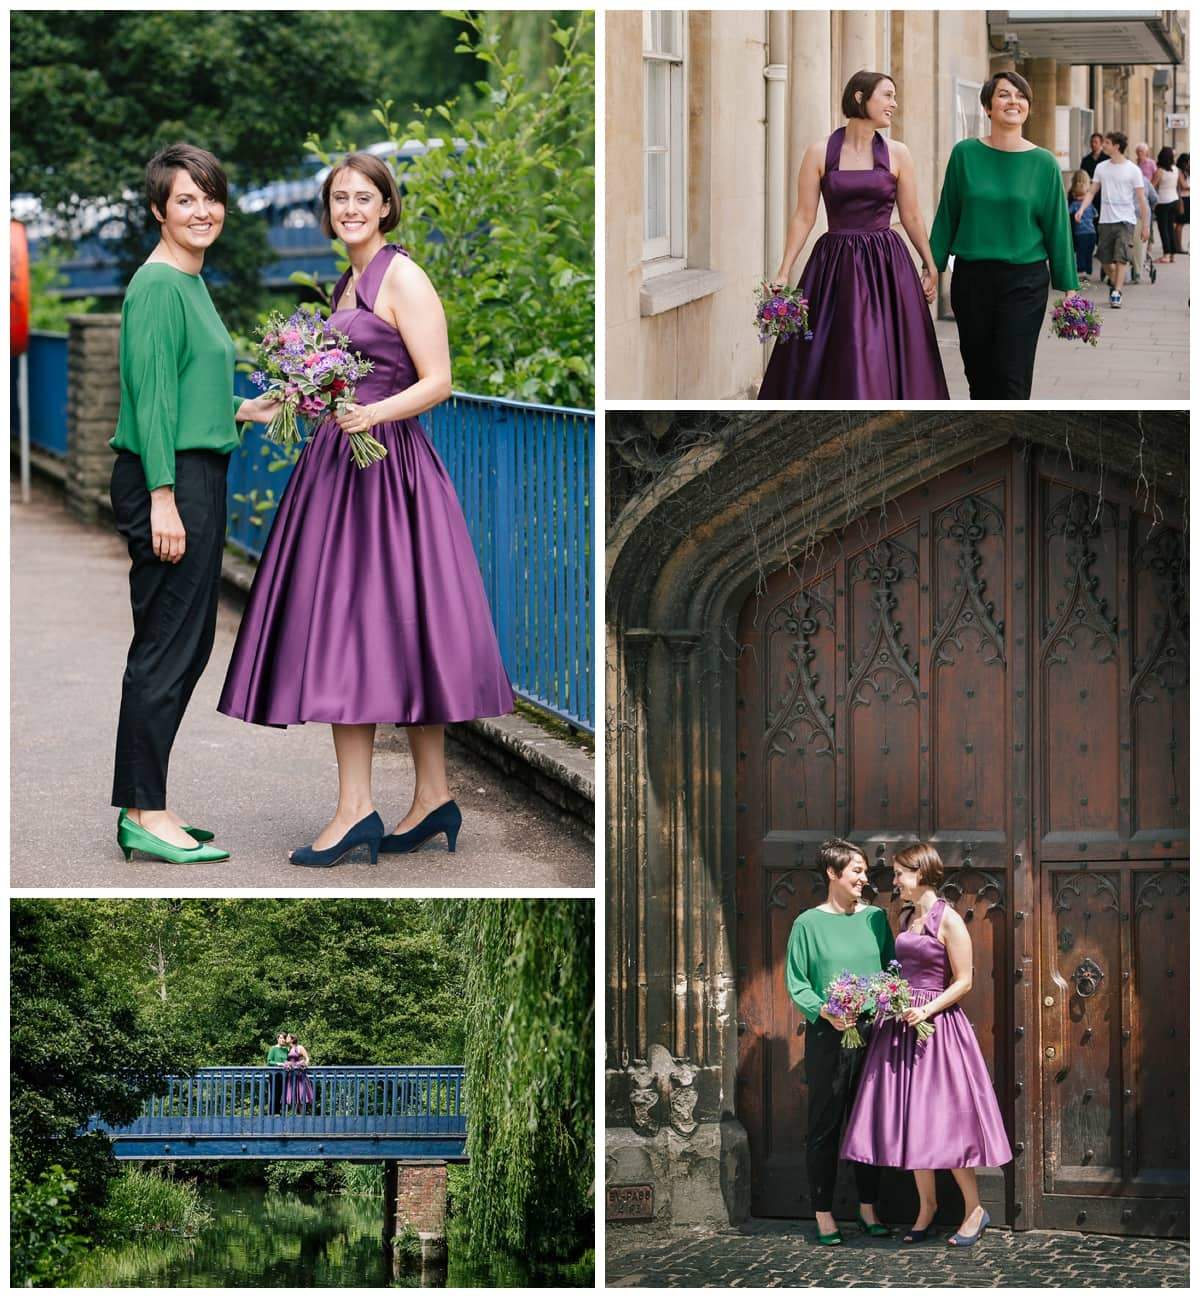 Collage of images from lesbian wedding in Oxford with brides in purple and green